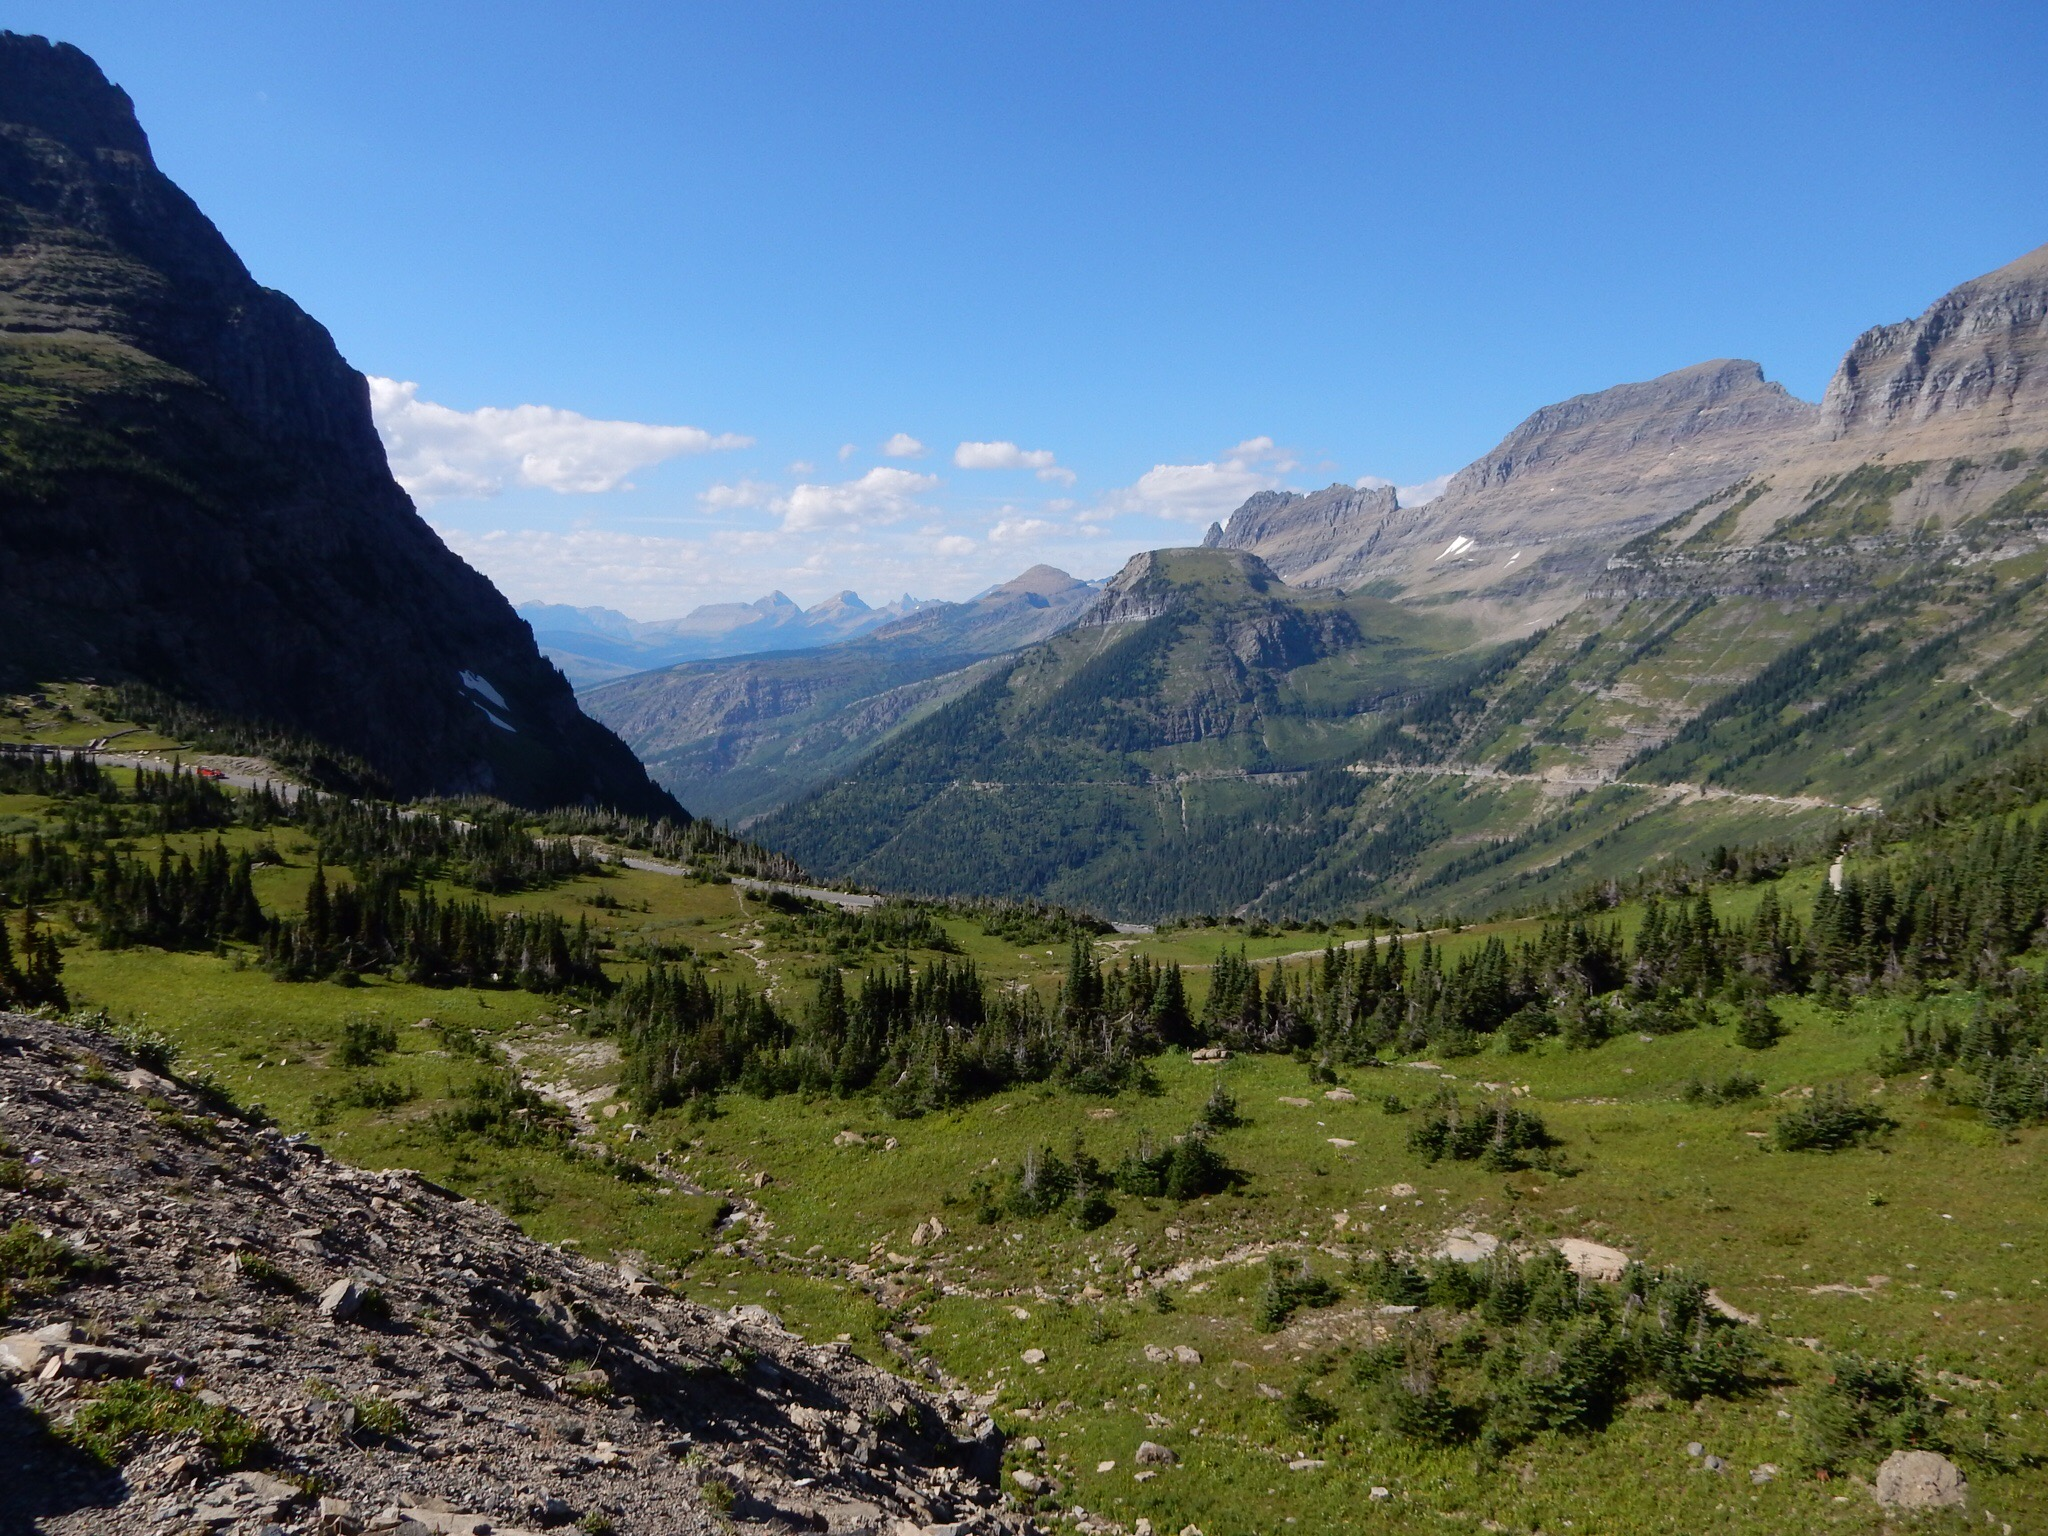 The money-shot view just west of the visitor center in Glacier NP.